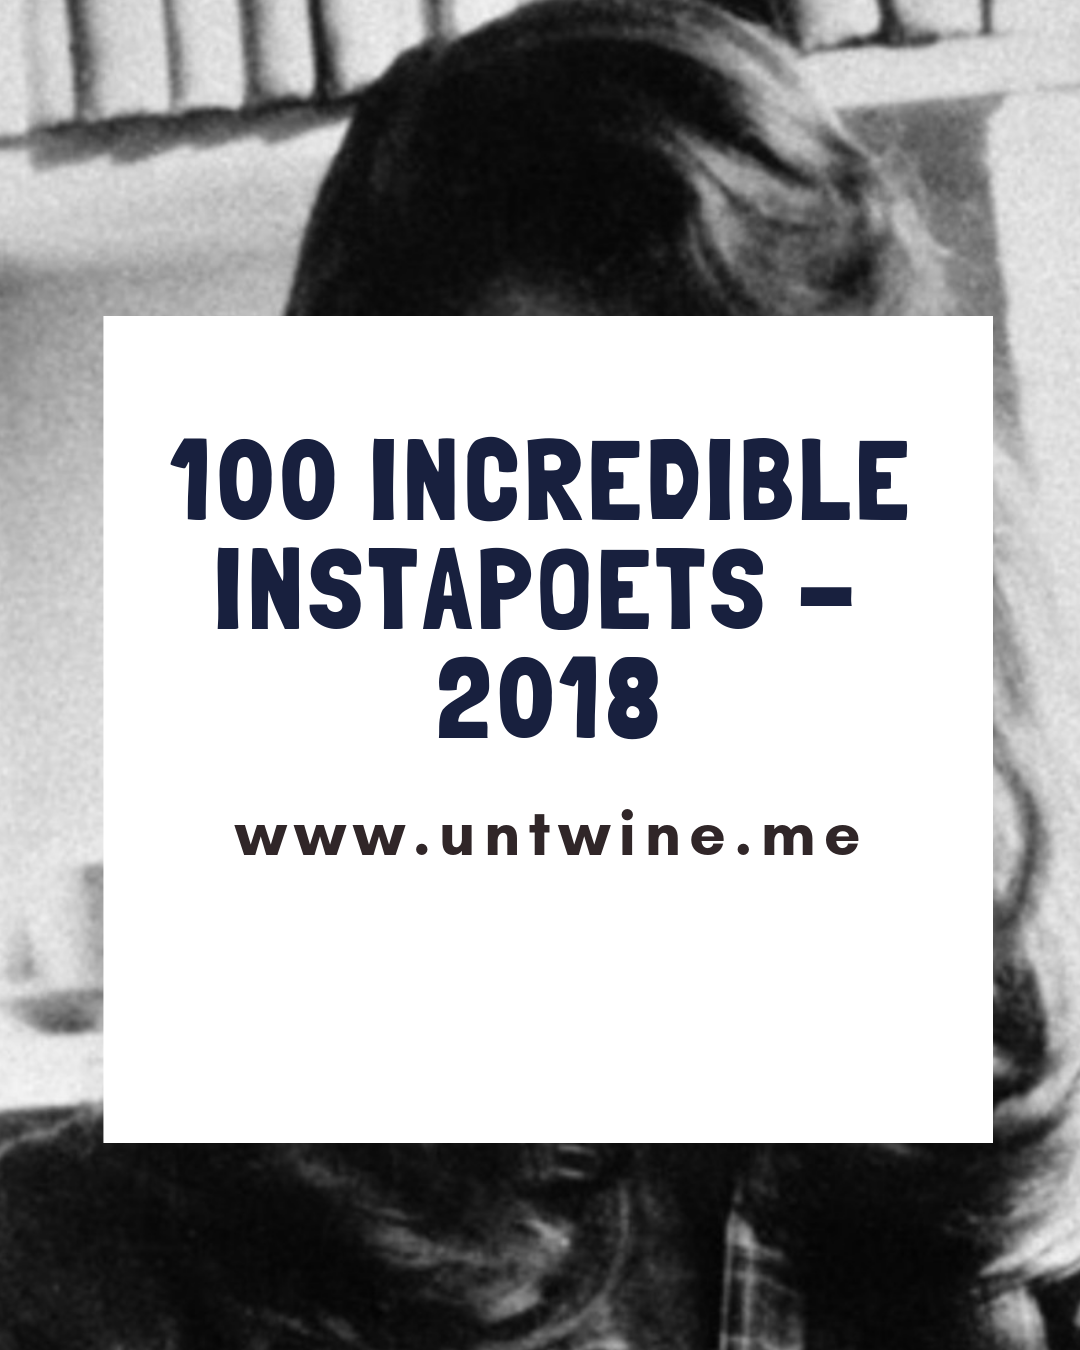 100 INCREDIBLE INSTAPOETS OF 2018: AKSCROLLS